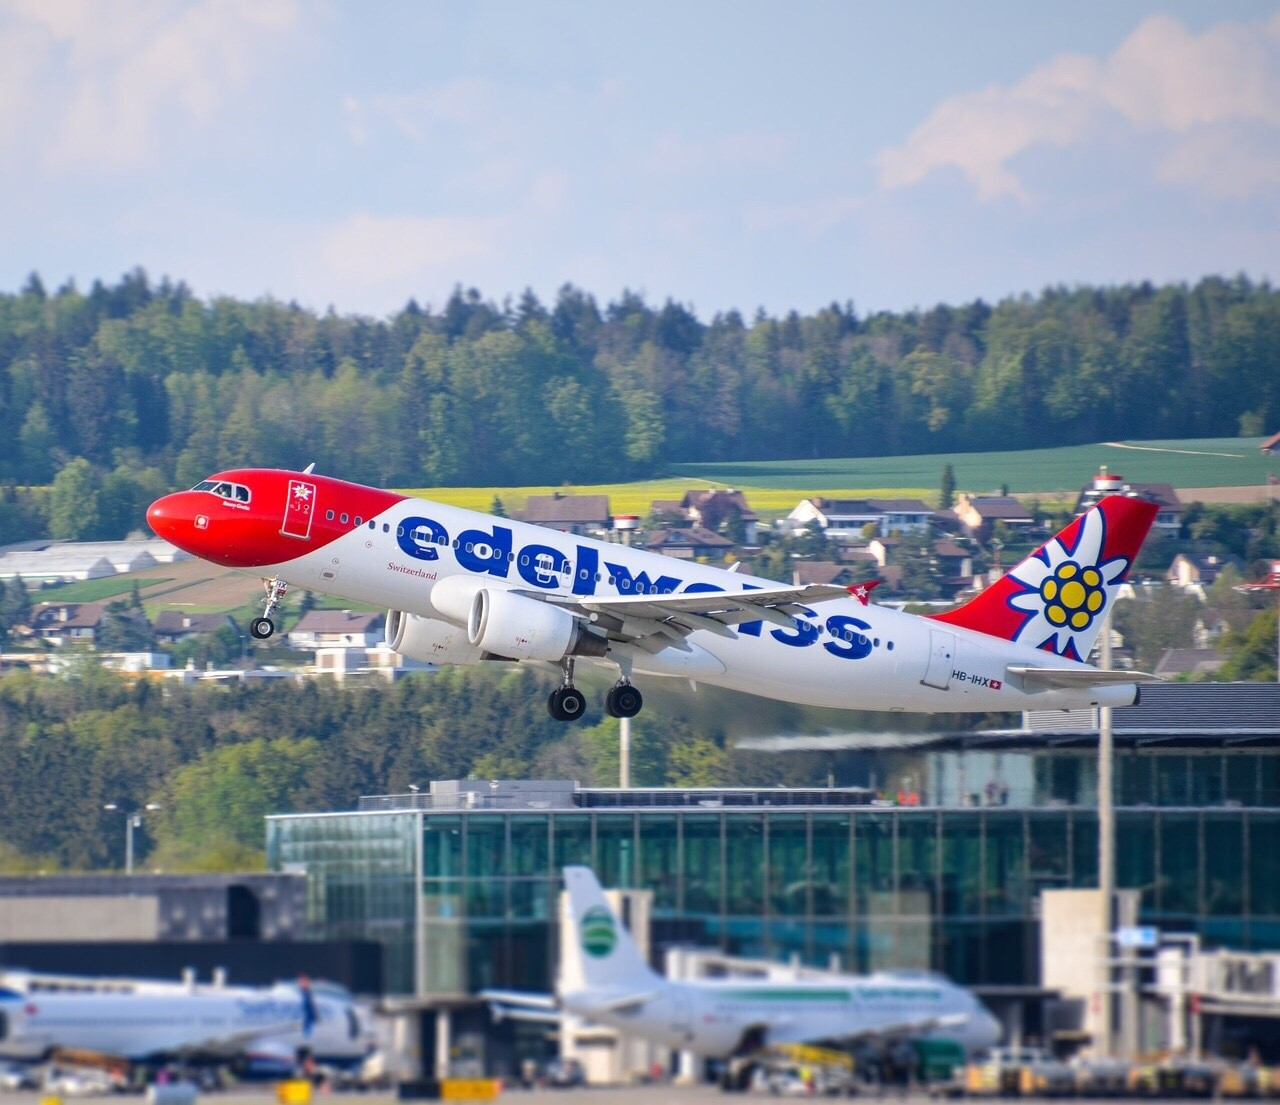 Edelweiss Brand, Edelweiss Airline, symbol